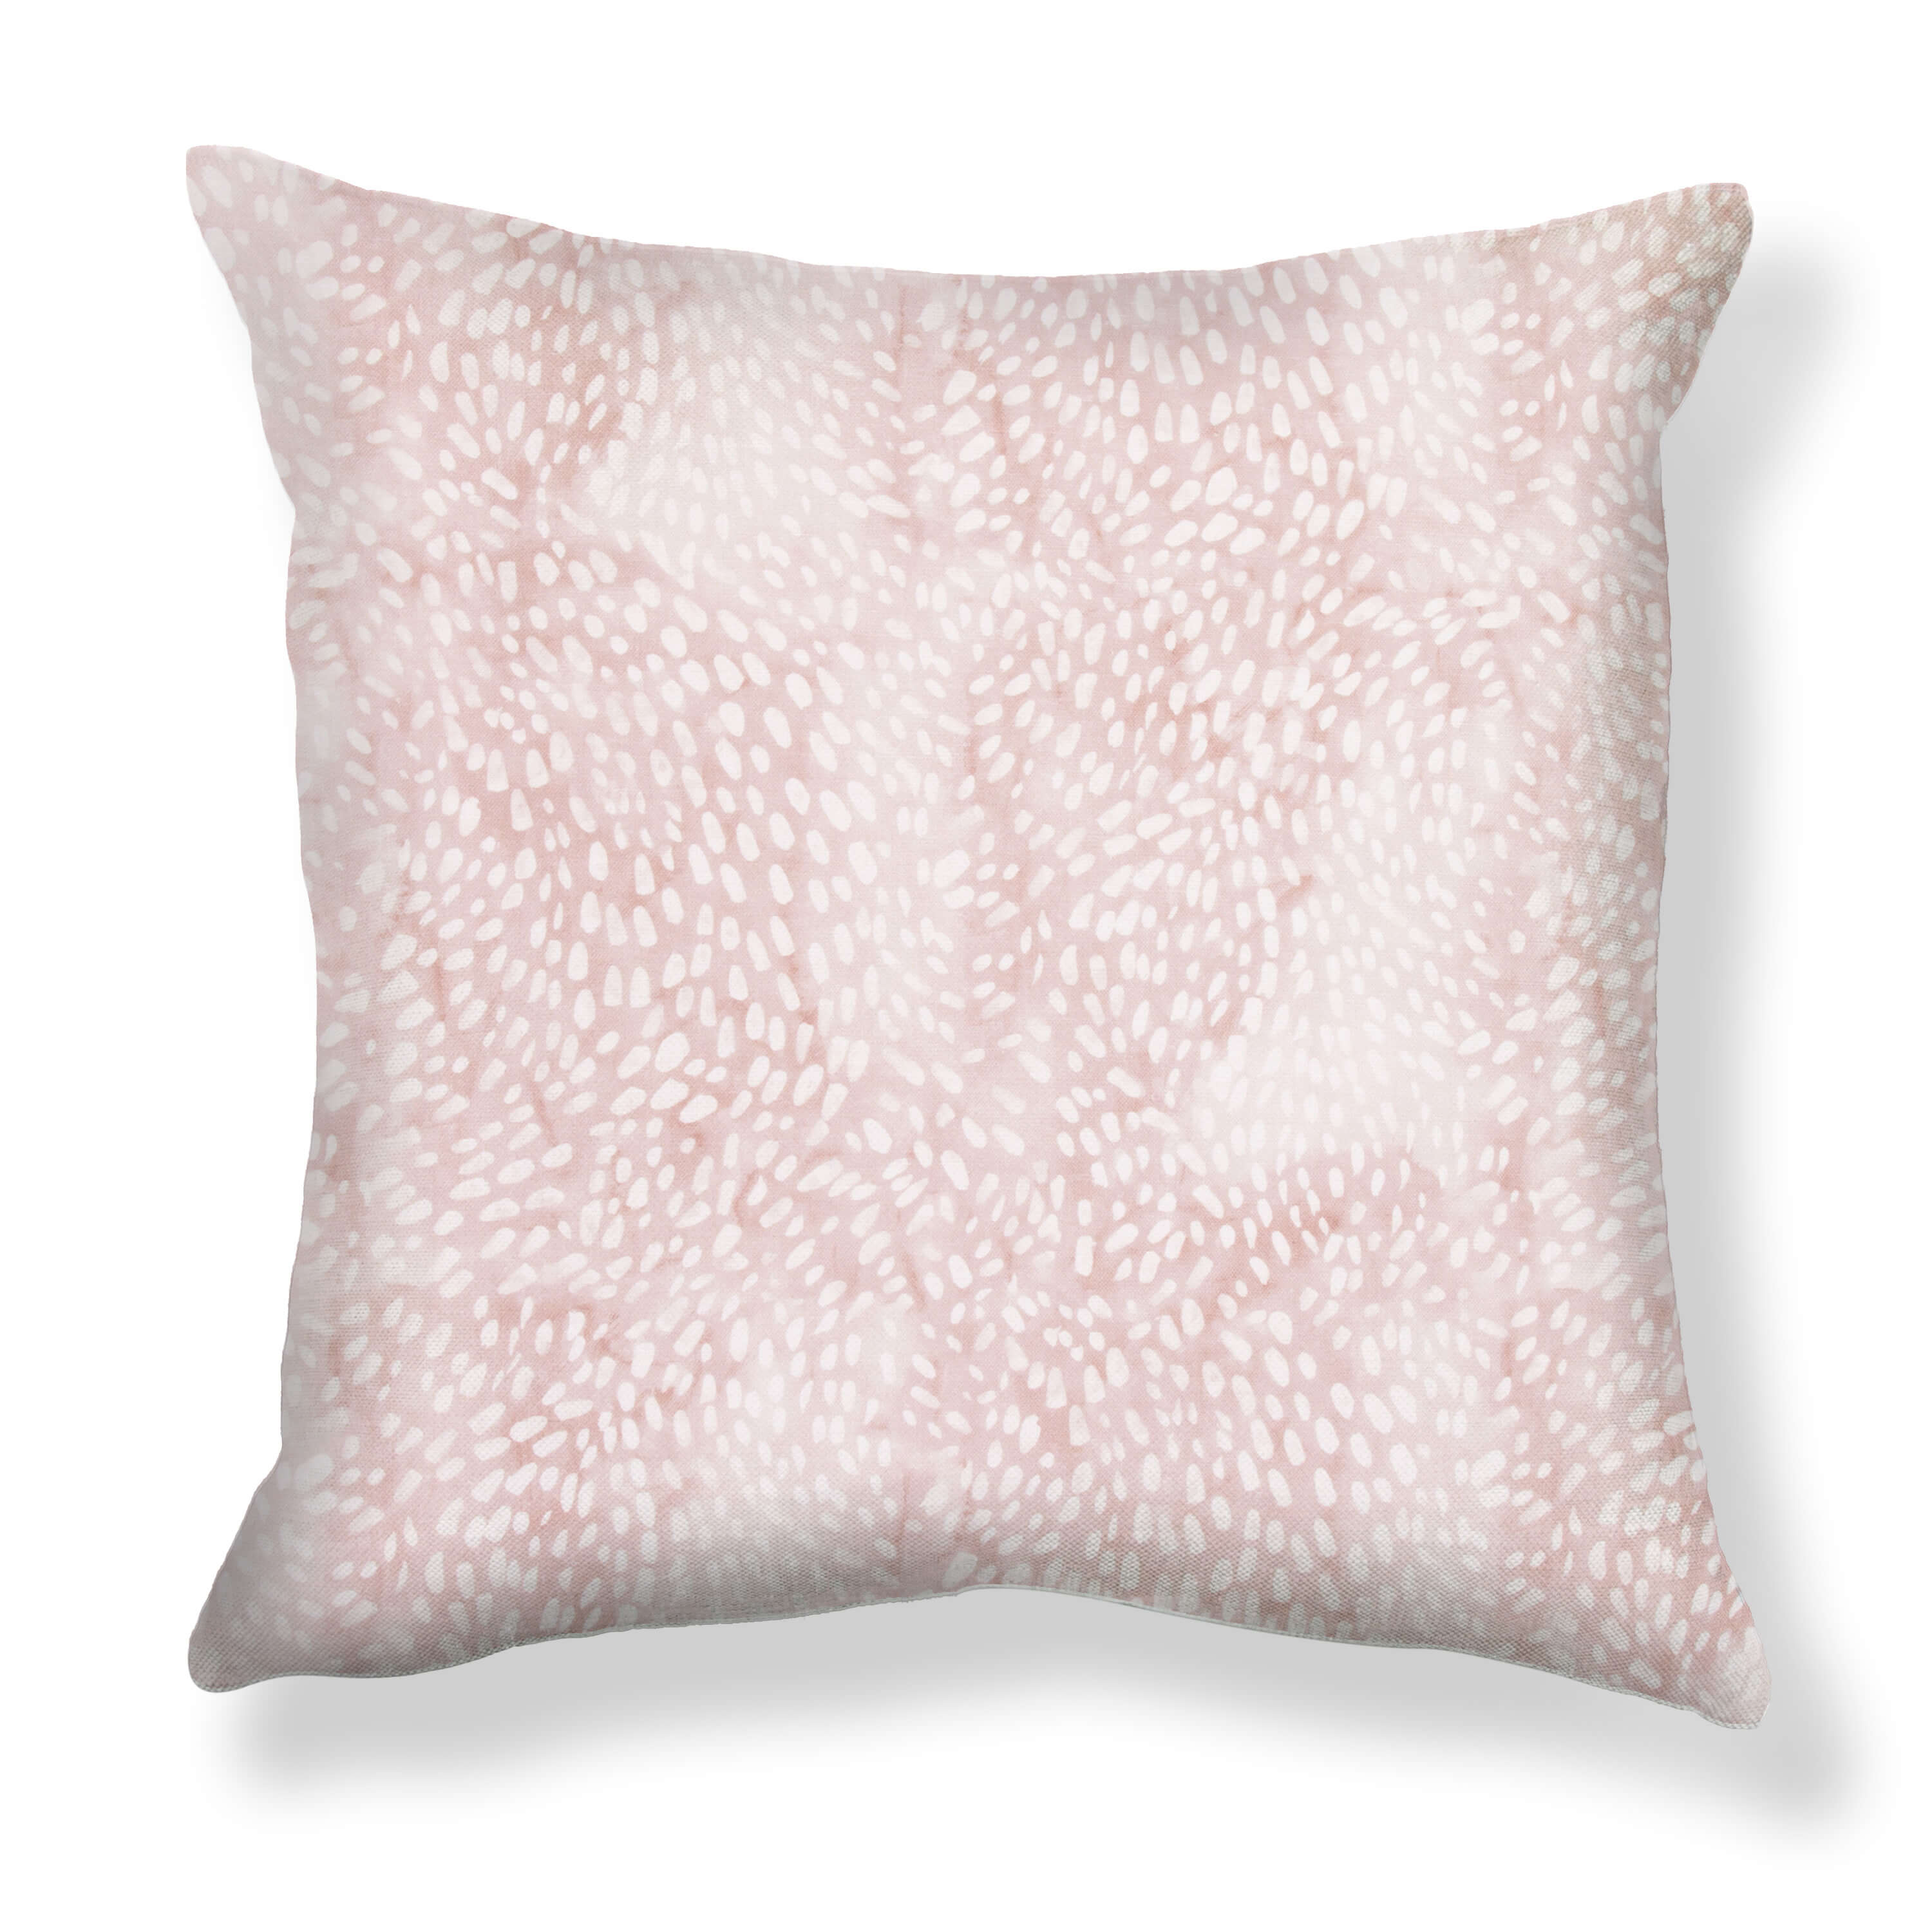 Speckled Pillows in Blush